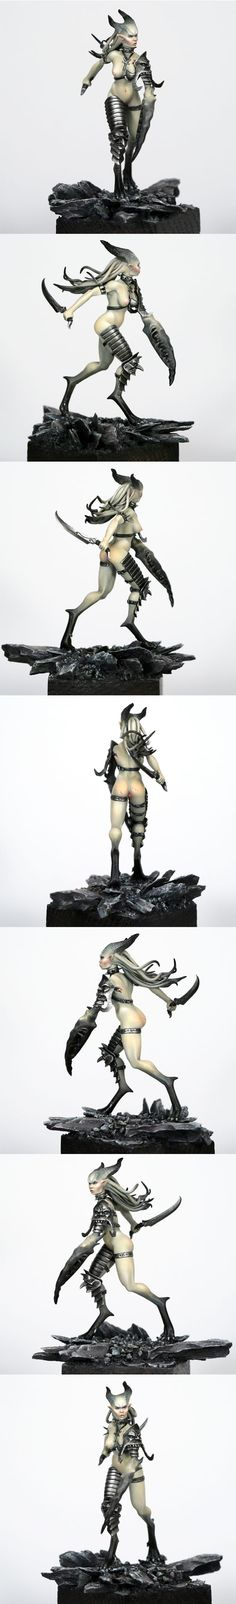 Demonette de Slaanesh